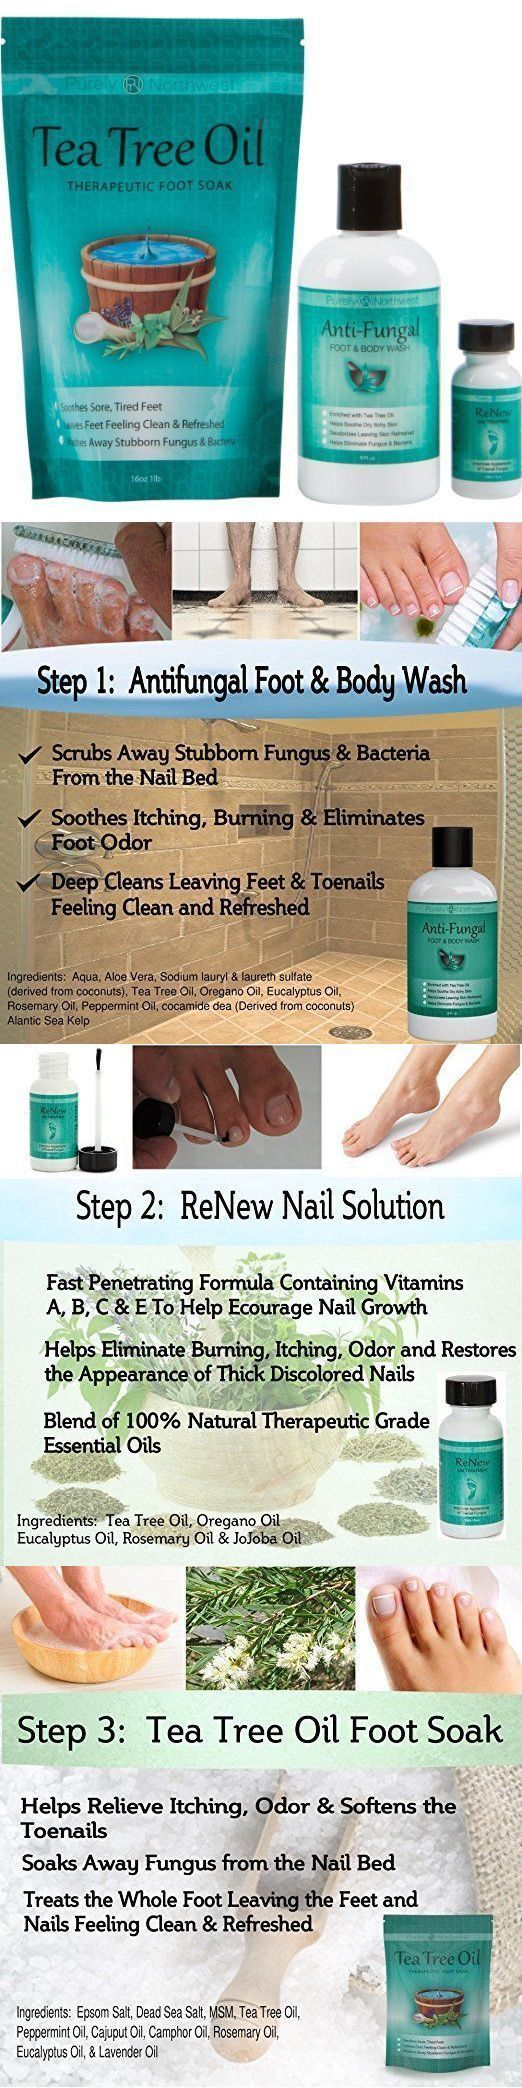 Foot Creams and Treatments: Tea Tree Oil Feet Toenail Fungus System Soothe Burning Itching Soap Foot Soak -> BUY IT NOW ONLY: $49.99 on eBay! #NailFungusYoungLiving